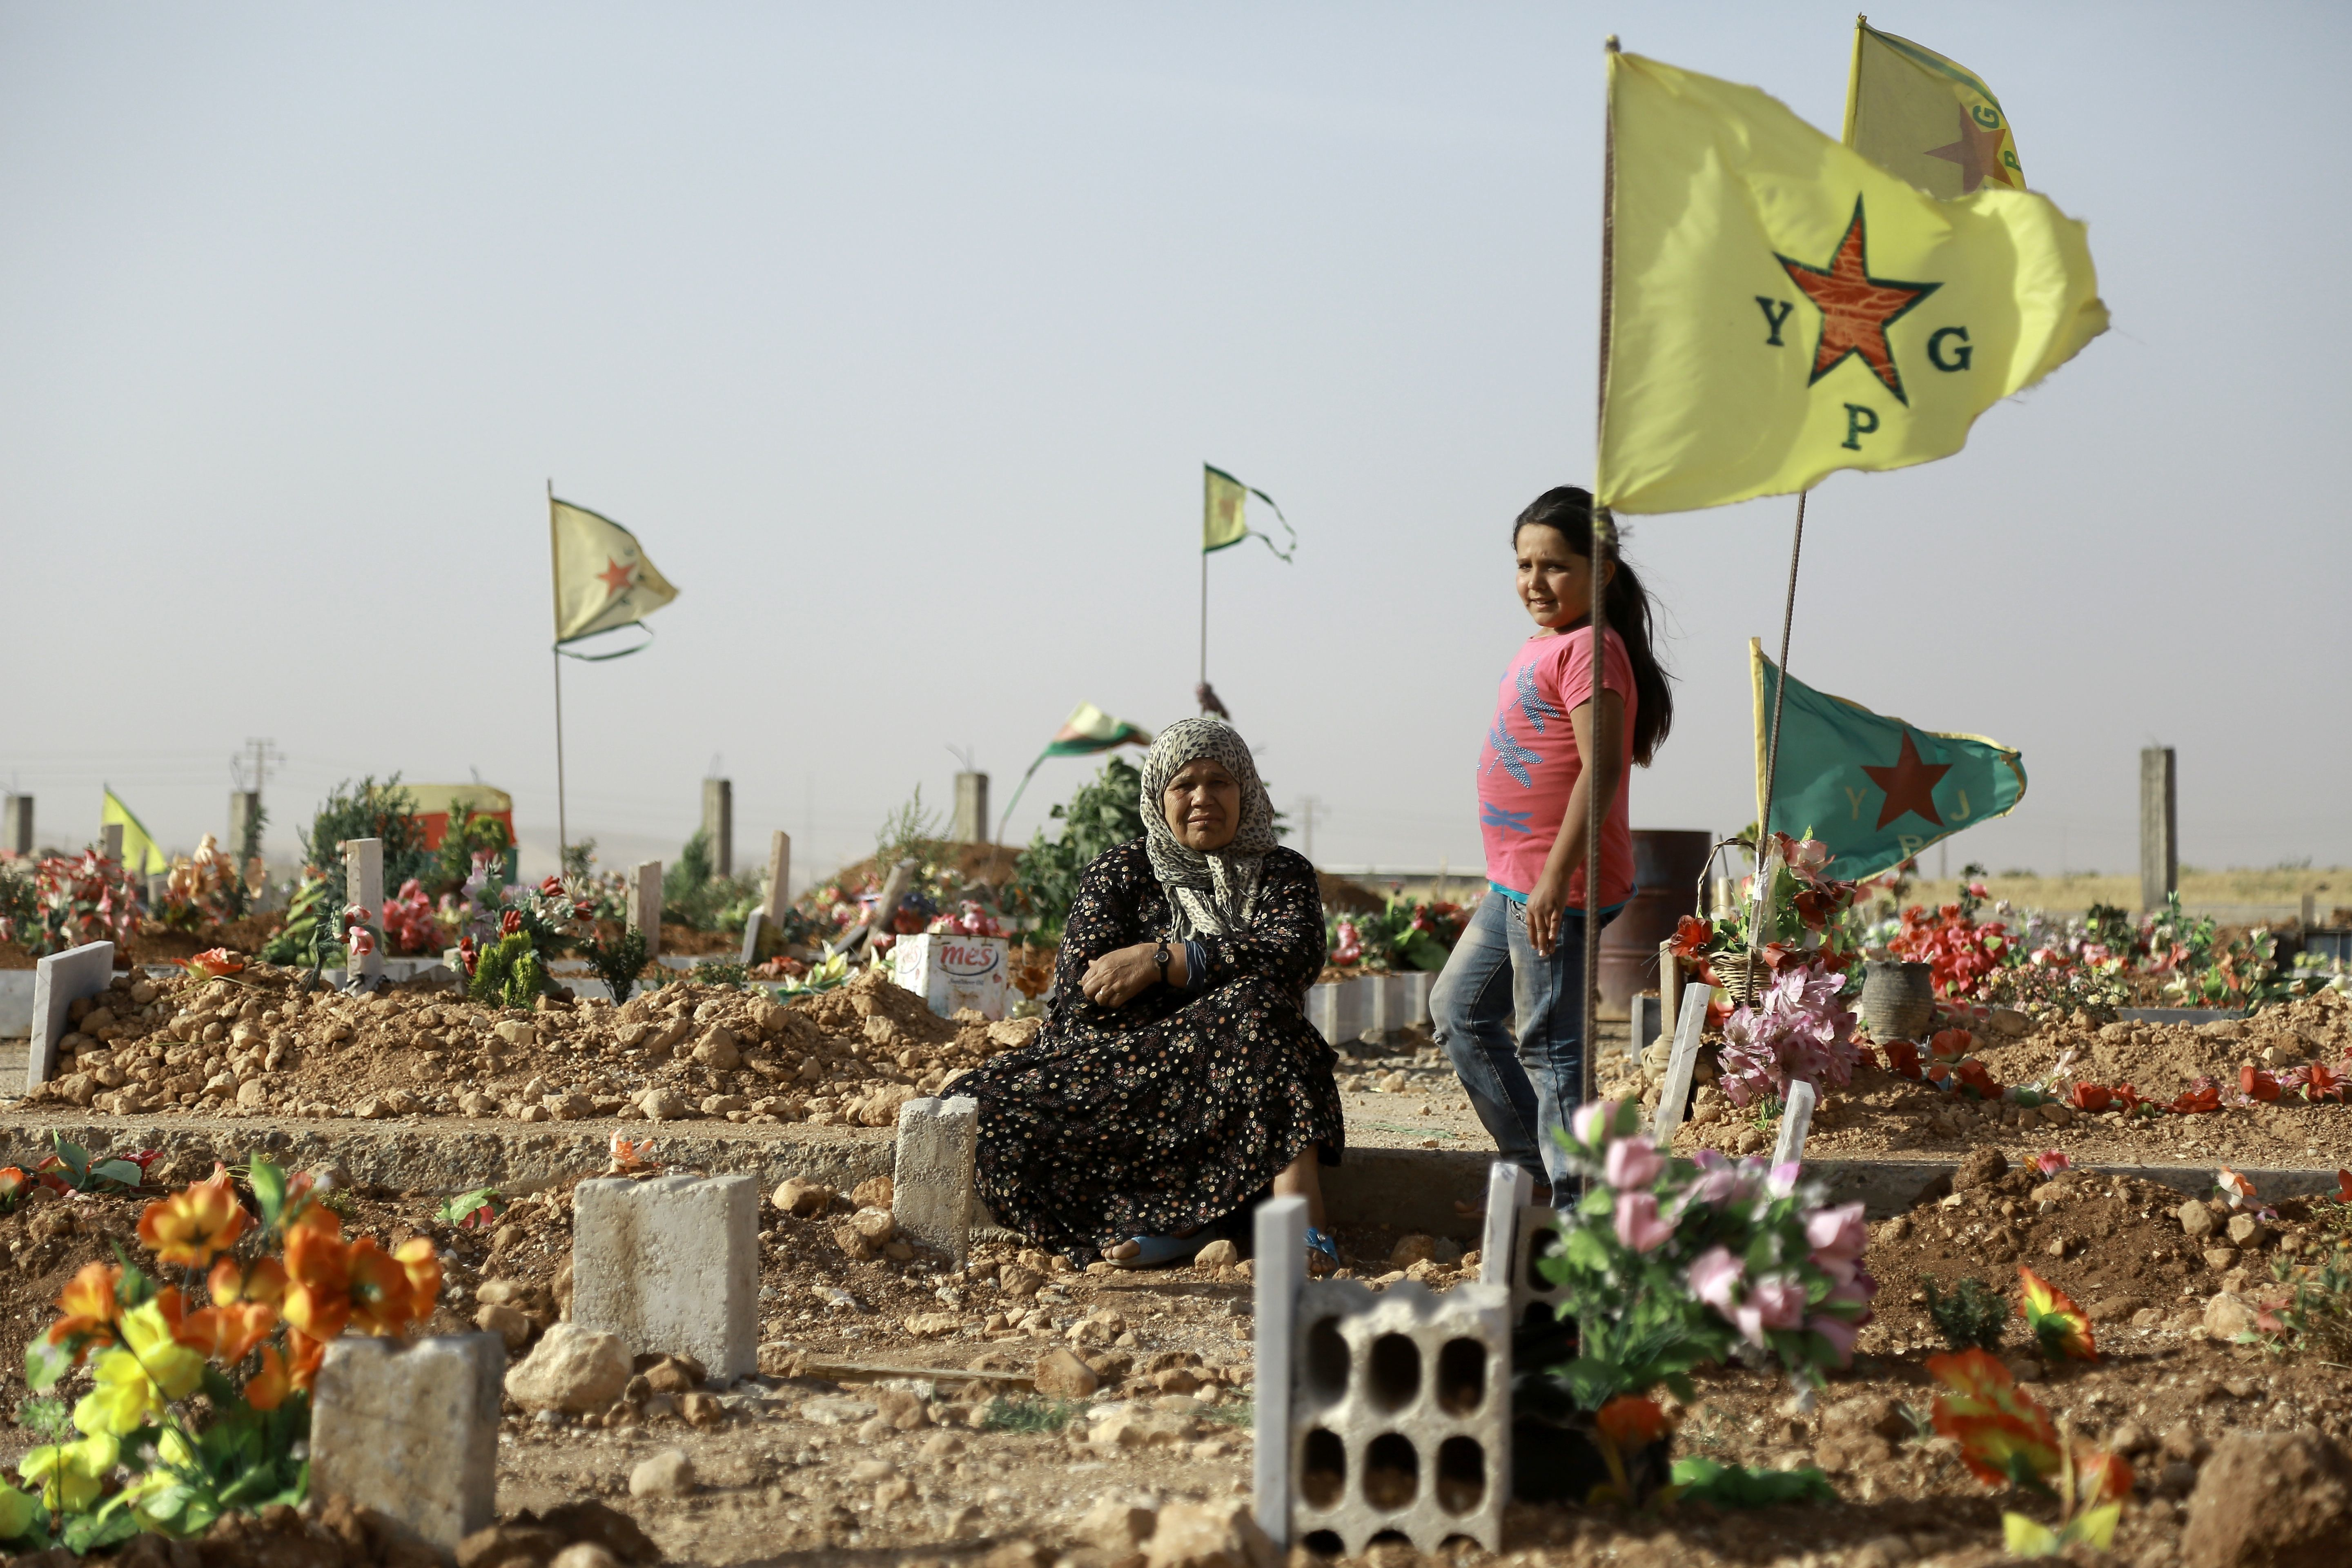 A Syrian Kurdish woman sits next to the grave of a relative during the funeral of fighters, who died during an assault launched by Arab and Kurdish forces against Islamic State (IS) group fighters in the town of Manbij, in the Syrian Kurdish town of Kobane on June 4, 2016.  Arab and Kurdish fighters backed by Washington have launched an assault on the strategic Manbij pocket further up the Euphrates on the Turkish border, regarded as a key entry point for foreign jihadists. The Syrian Democratic Forces's offensive against the Manbij pocket is aimed at seizing the last stretch of border still under IS control and denying the jihadists any opportunity to smuggle in recruits and funds. / AFP / Delil Souleiman        (Photo credit should read DELIL SOULEIMAN/AFP/Getty Images)